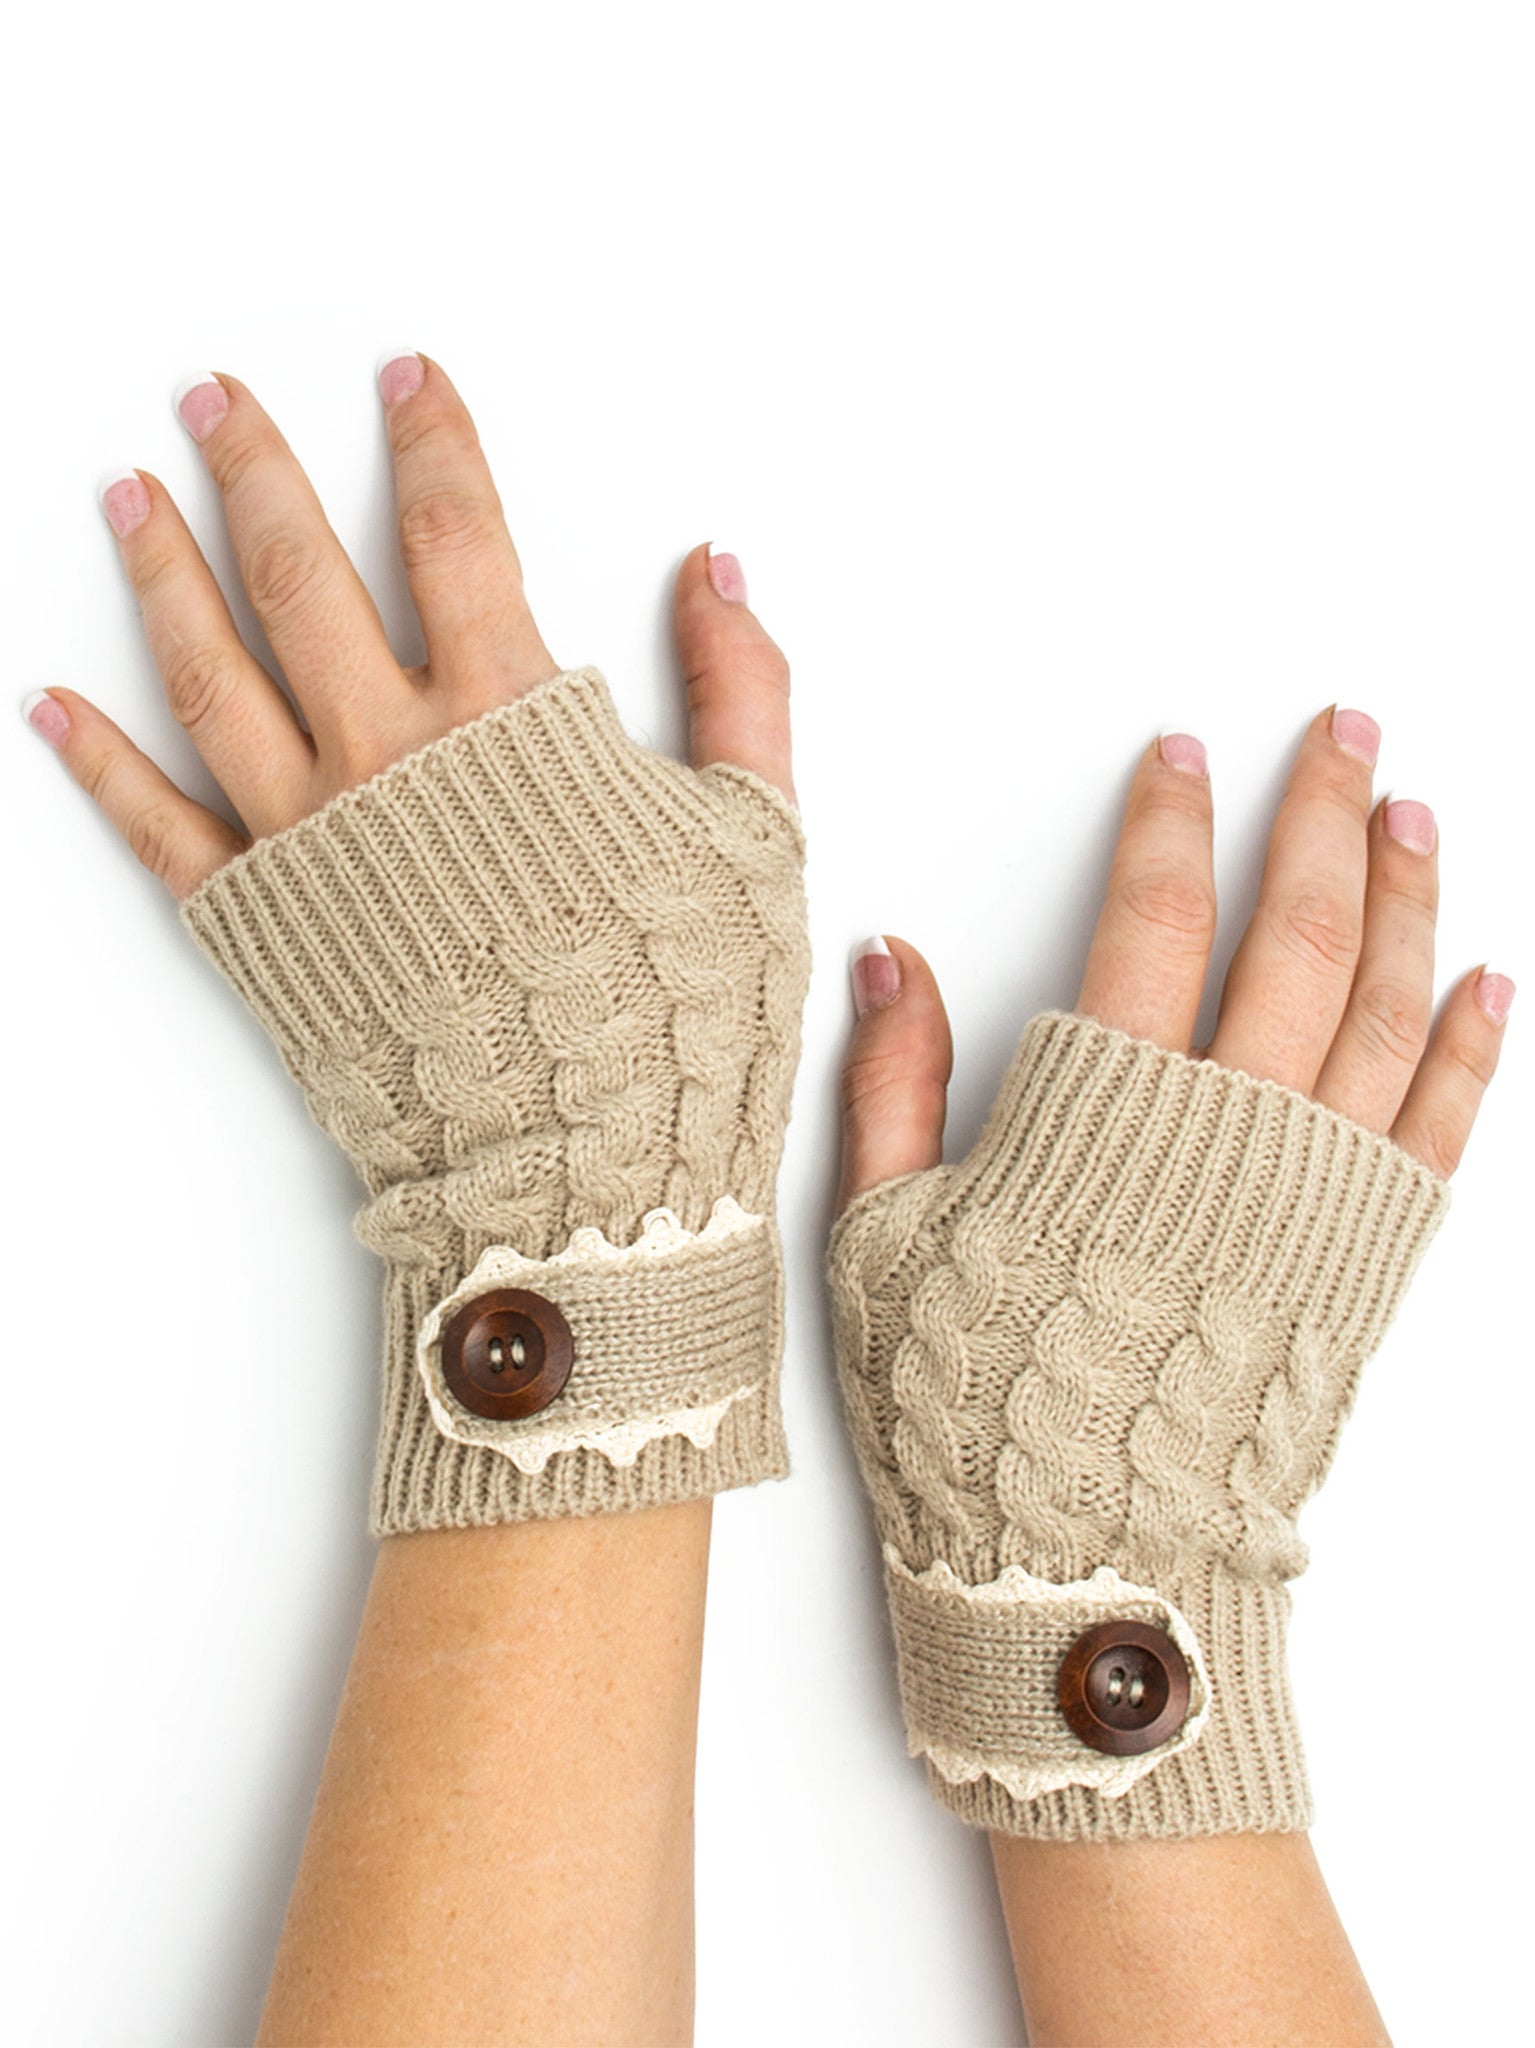 Armwarmers - Tawny Cable Knit Boho Mori Style Armwarmers / Fingerless Gloves with Crochet Lace -(Sand) Bohomonde  - 1